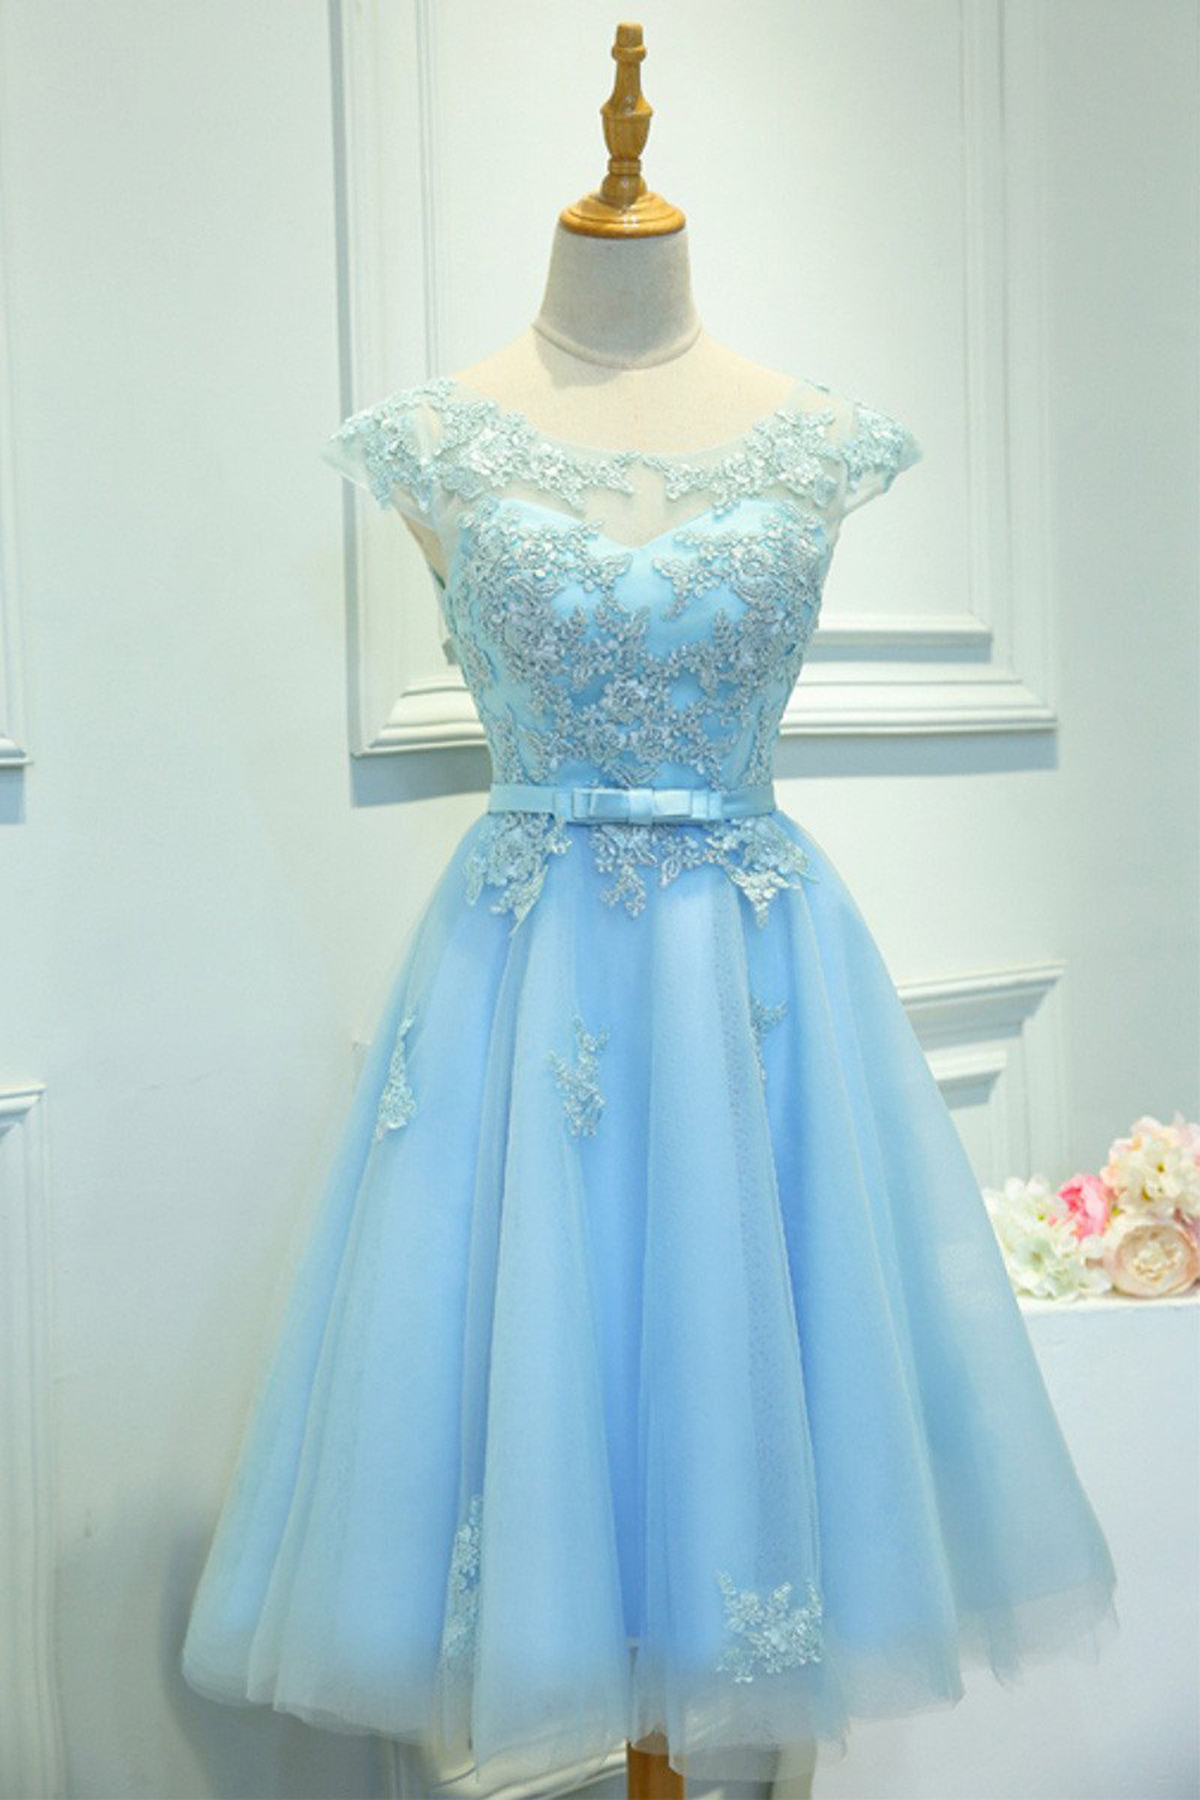 Cute ice blue lace short prom dress with bow, short homecoming dress ...